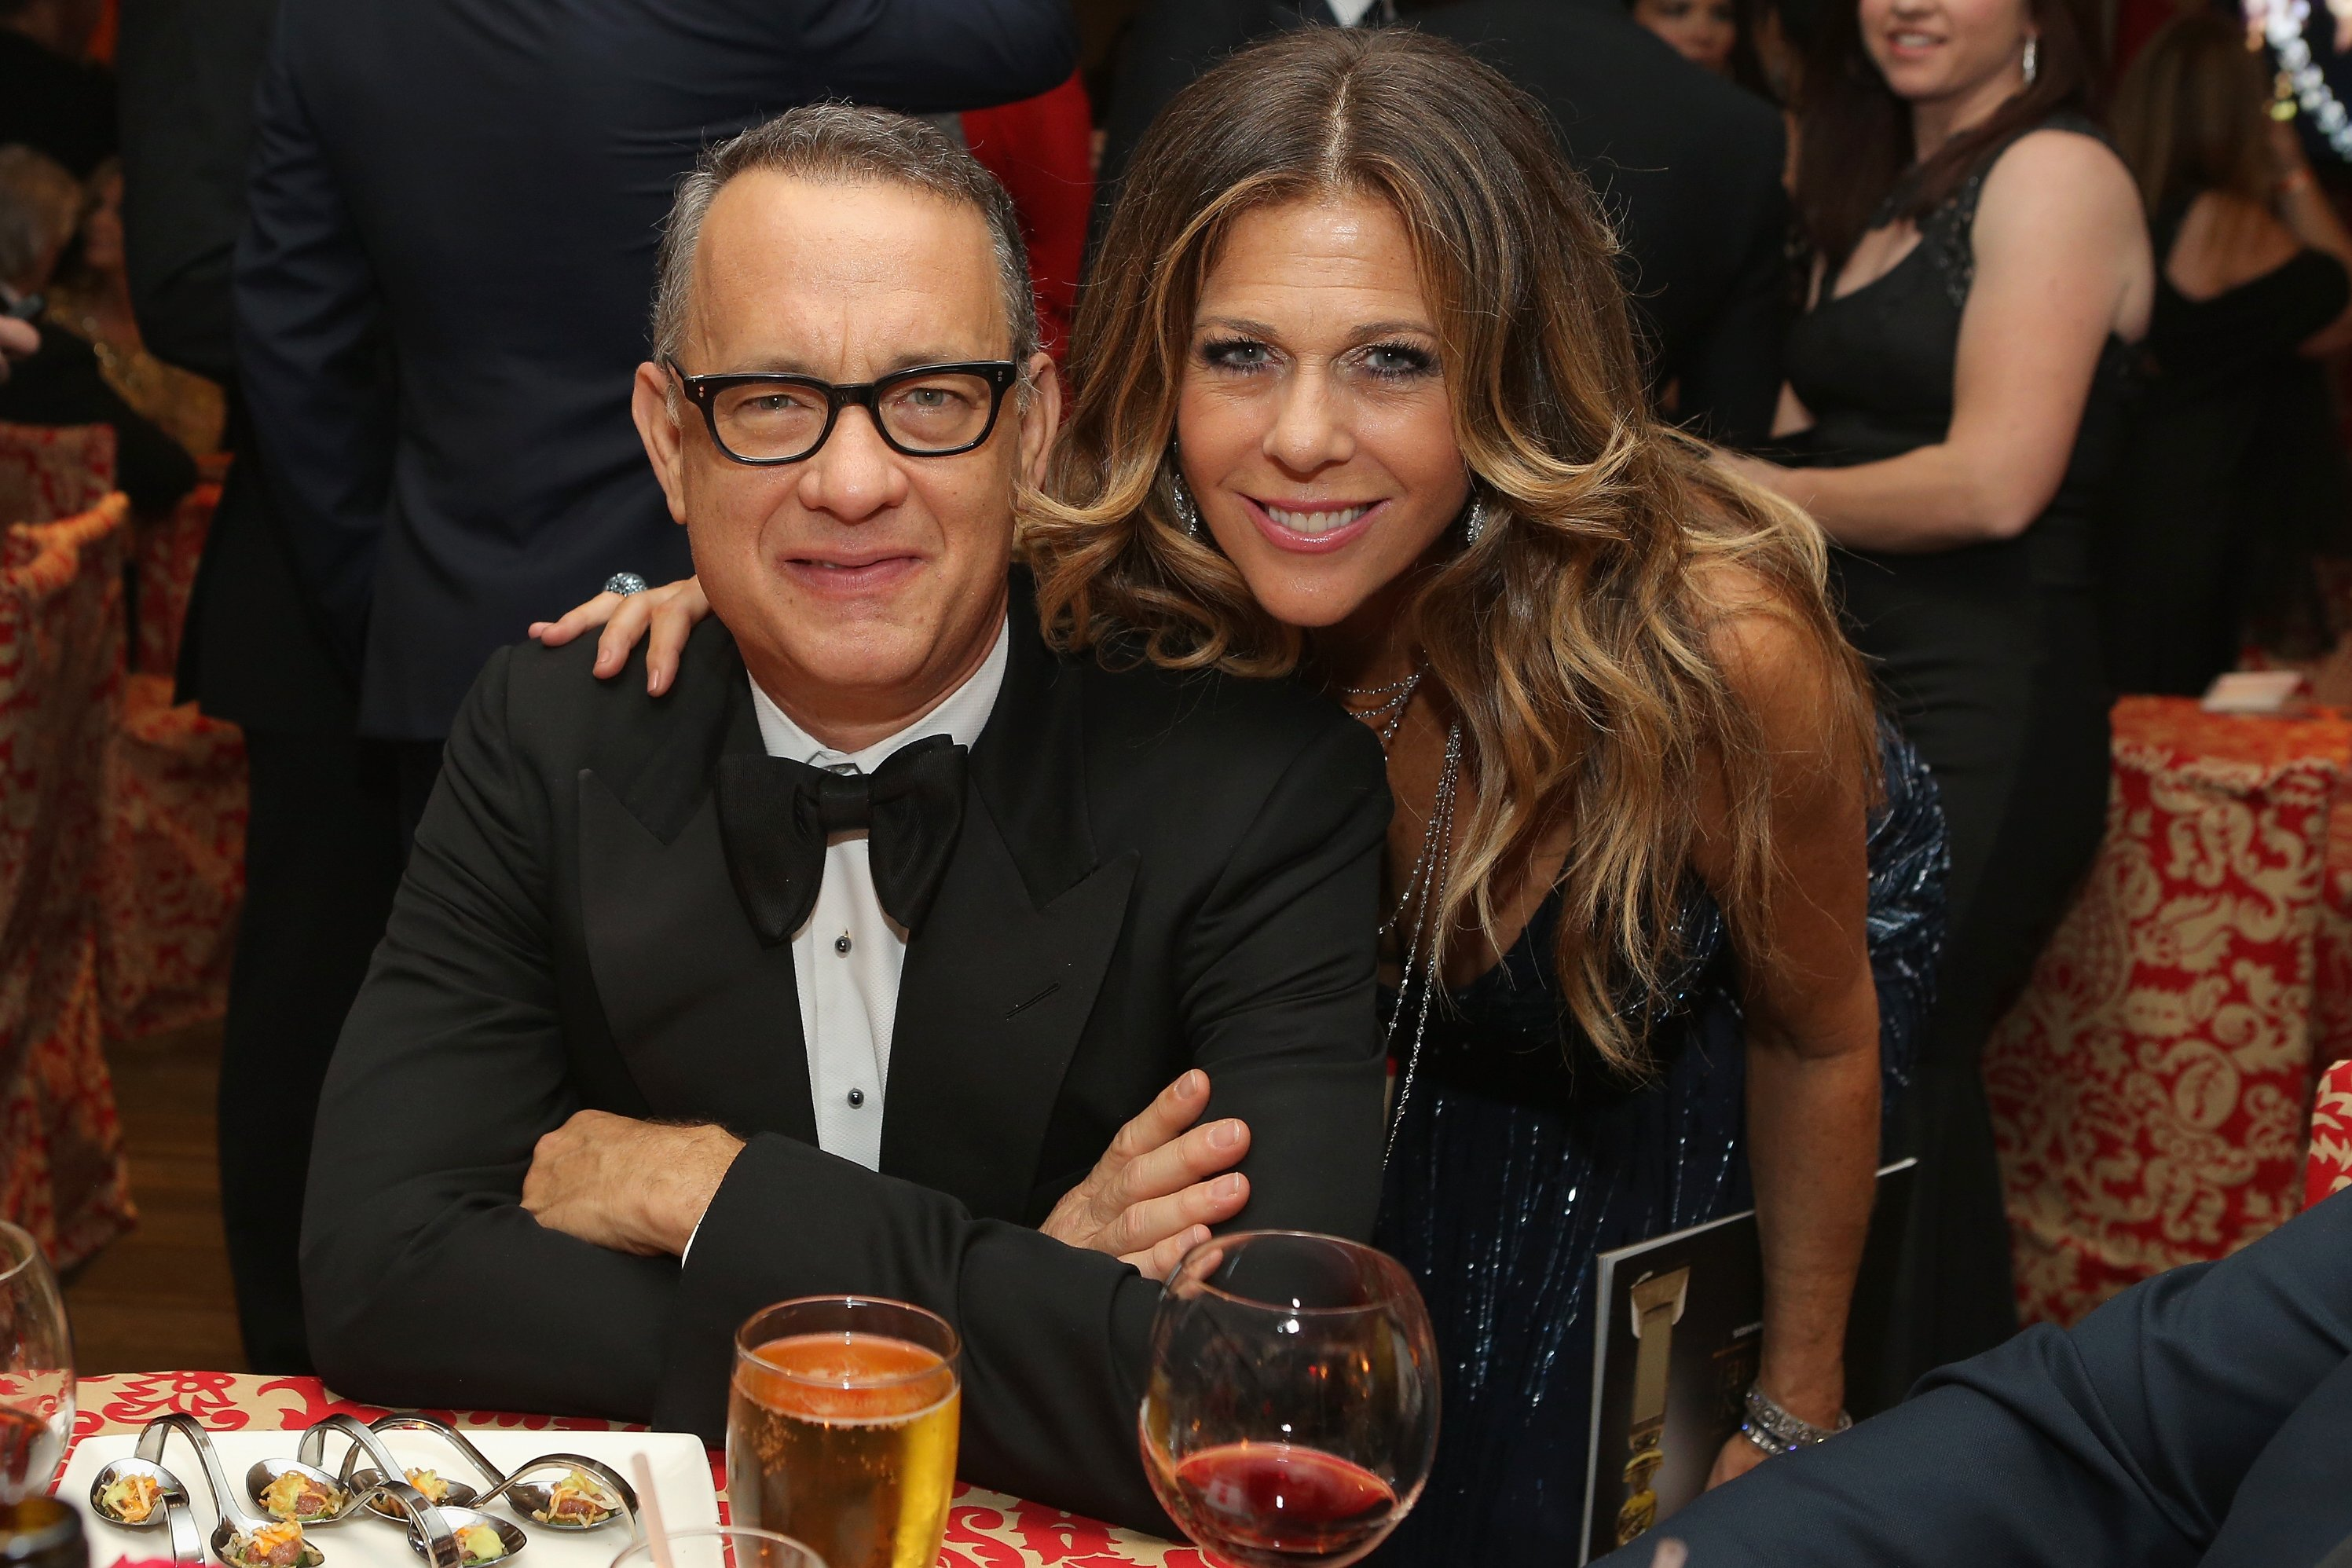 Image Credits: Getty Images / Mike Windle | Actors Tom Hanks (L) and Rita Wilson attend HBO's Post 2014 Golden Globe Awards Party at Circa 55 Restaurant on January 12, 2014 in Los Angeles, California.